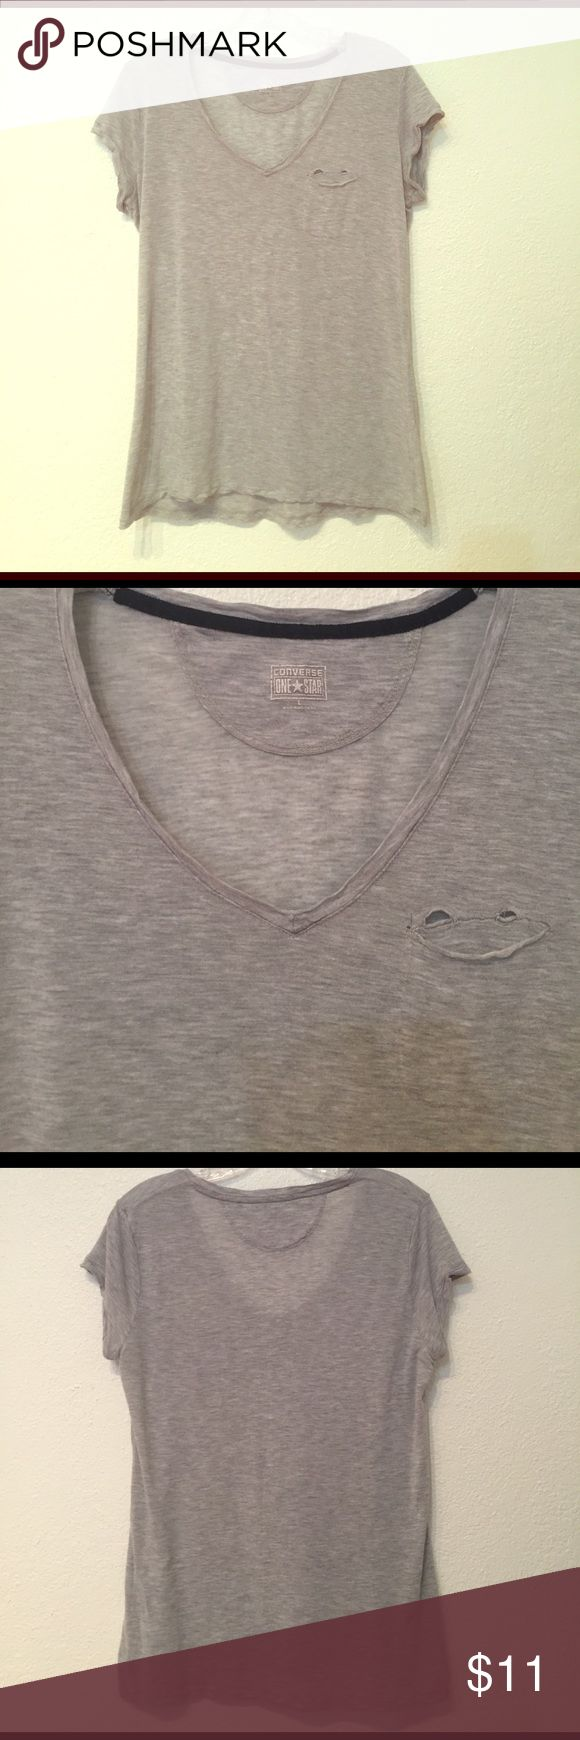 Converse One Star light gray paper t-shirt Converse One Star light gray paper v neck  t-shirt. Condition: Excellent. Like new. Materials: 100% lyocell. Note: We offer a 30% discount on bundles of 3+ items in our closet! Converse Tops Tees - Short Sleeve